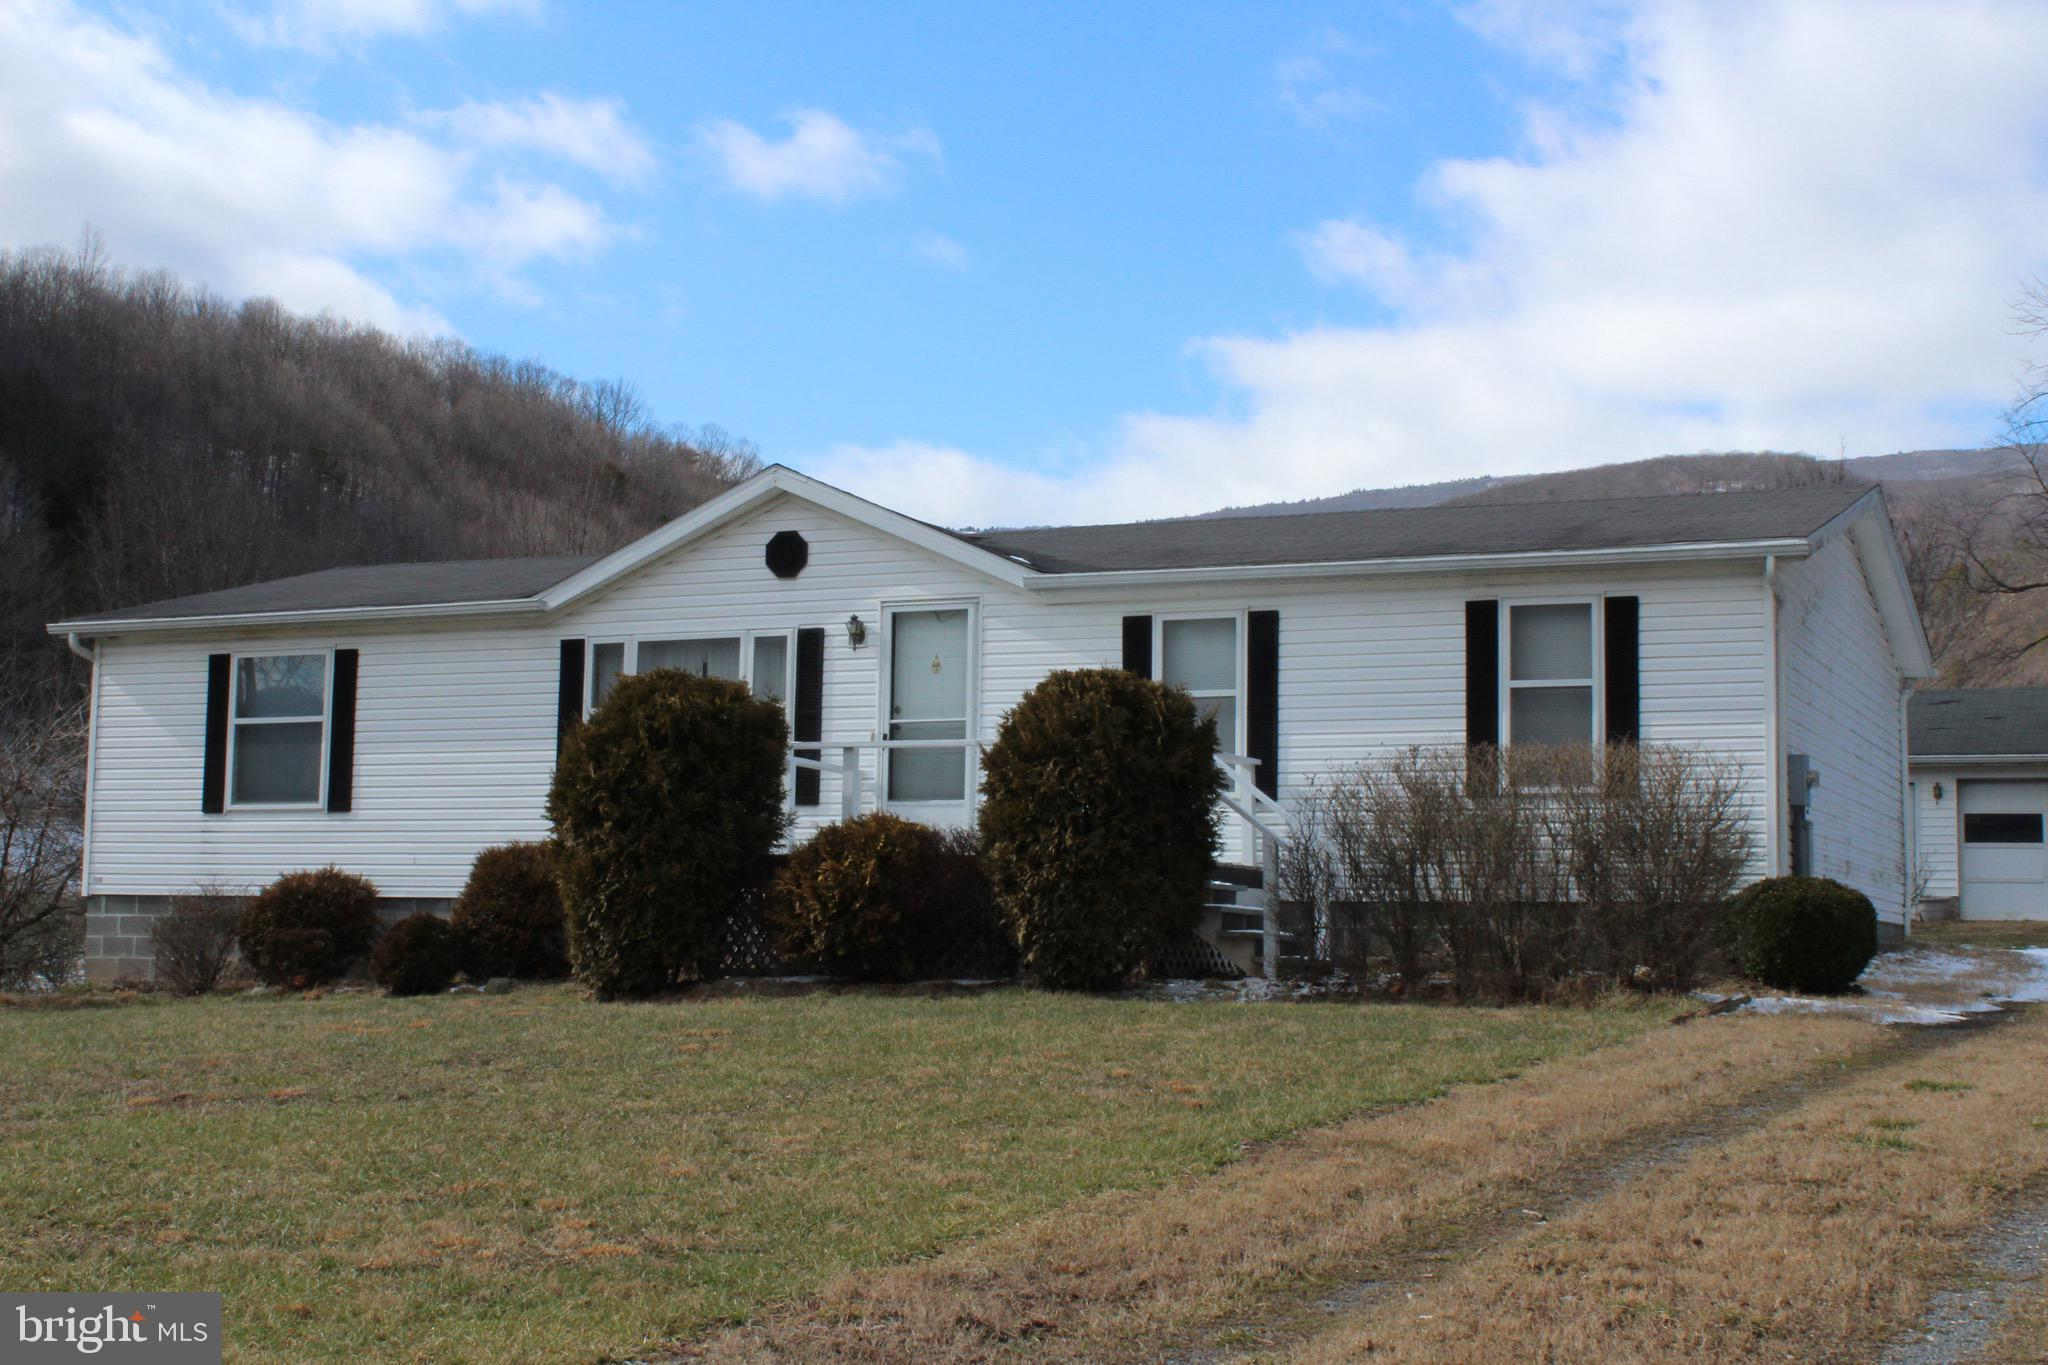 449 LAUREL RUN ROAD, MAYSVILLE, WV 26833